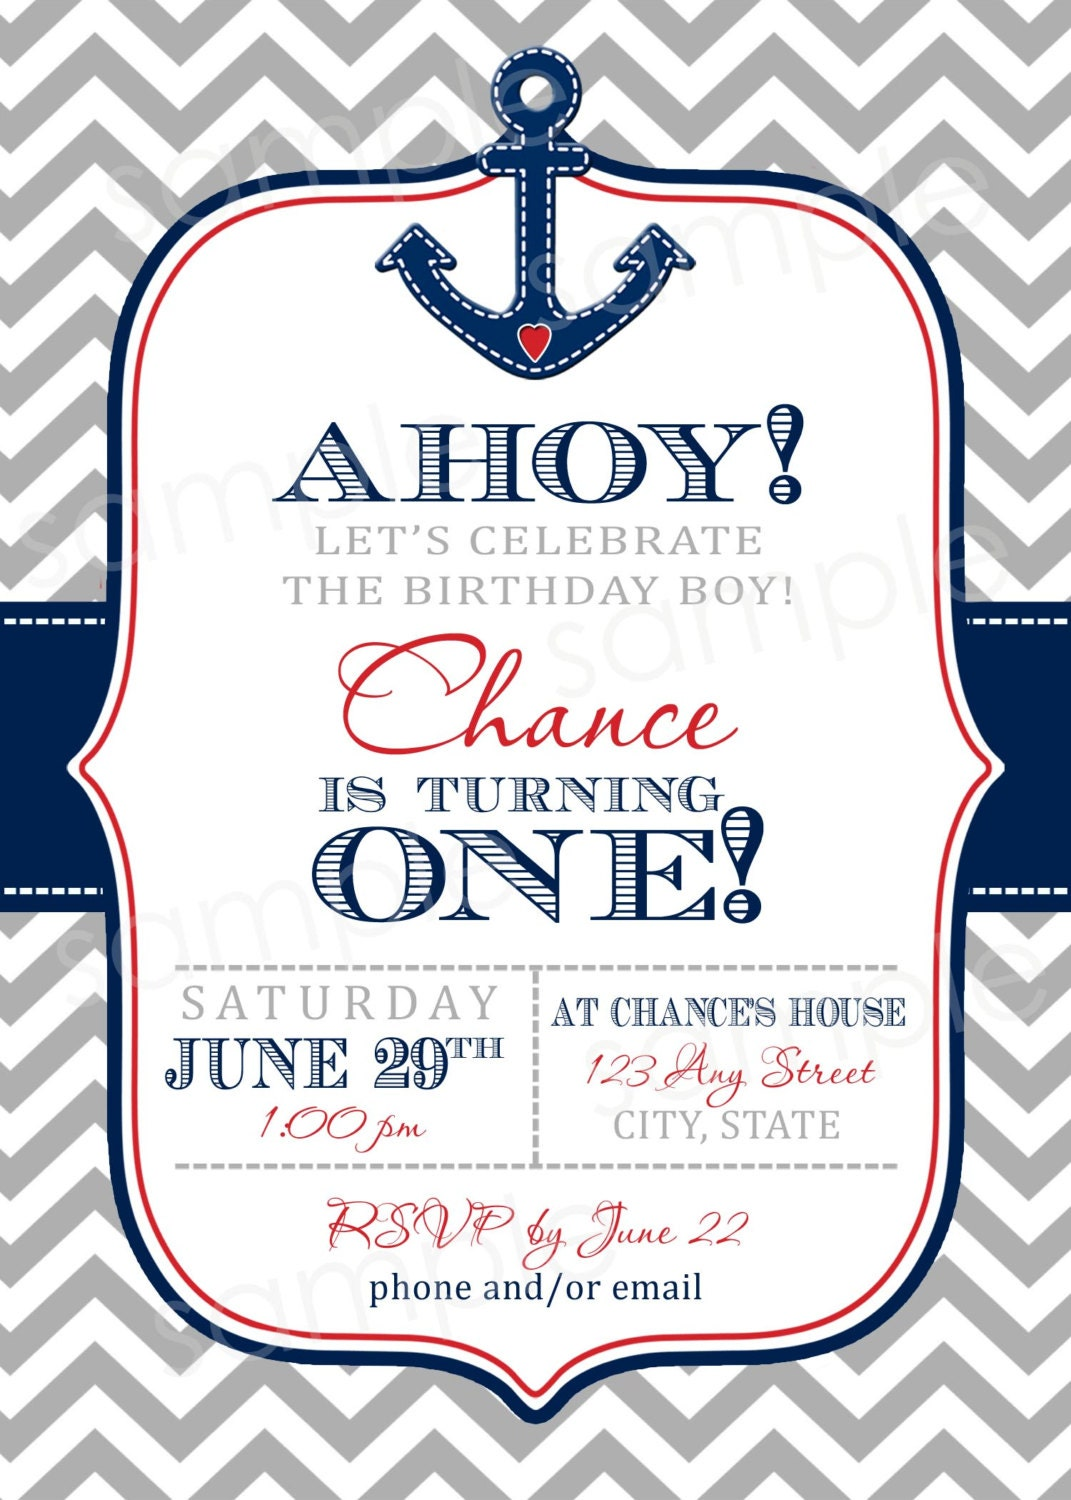 Anchor Invitations with luxury invitation ideas